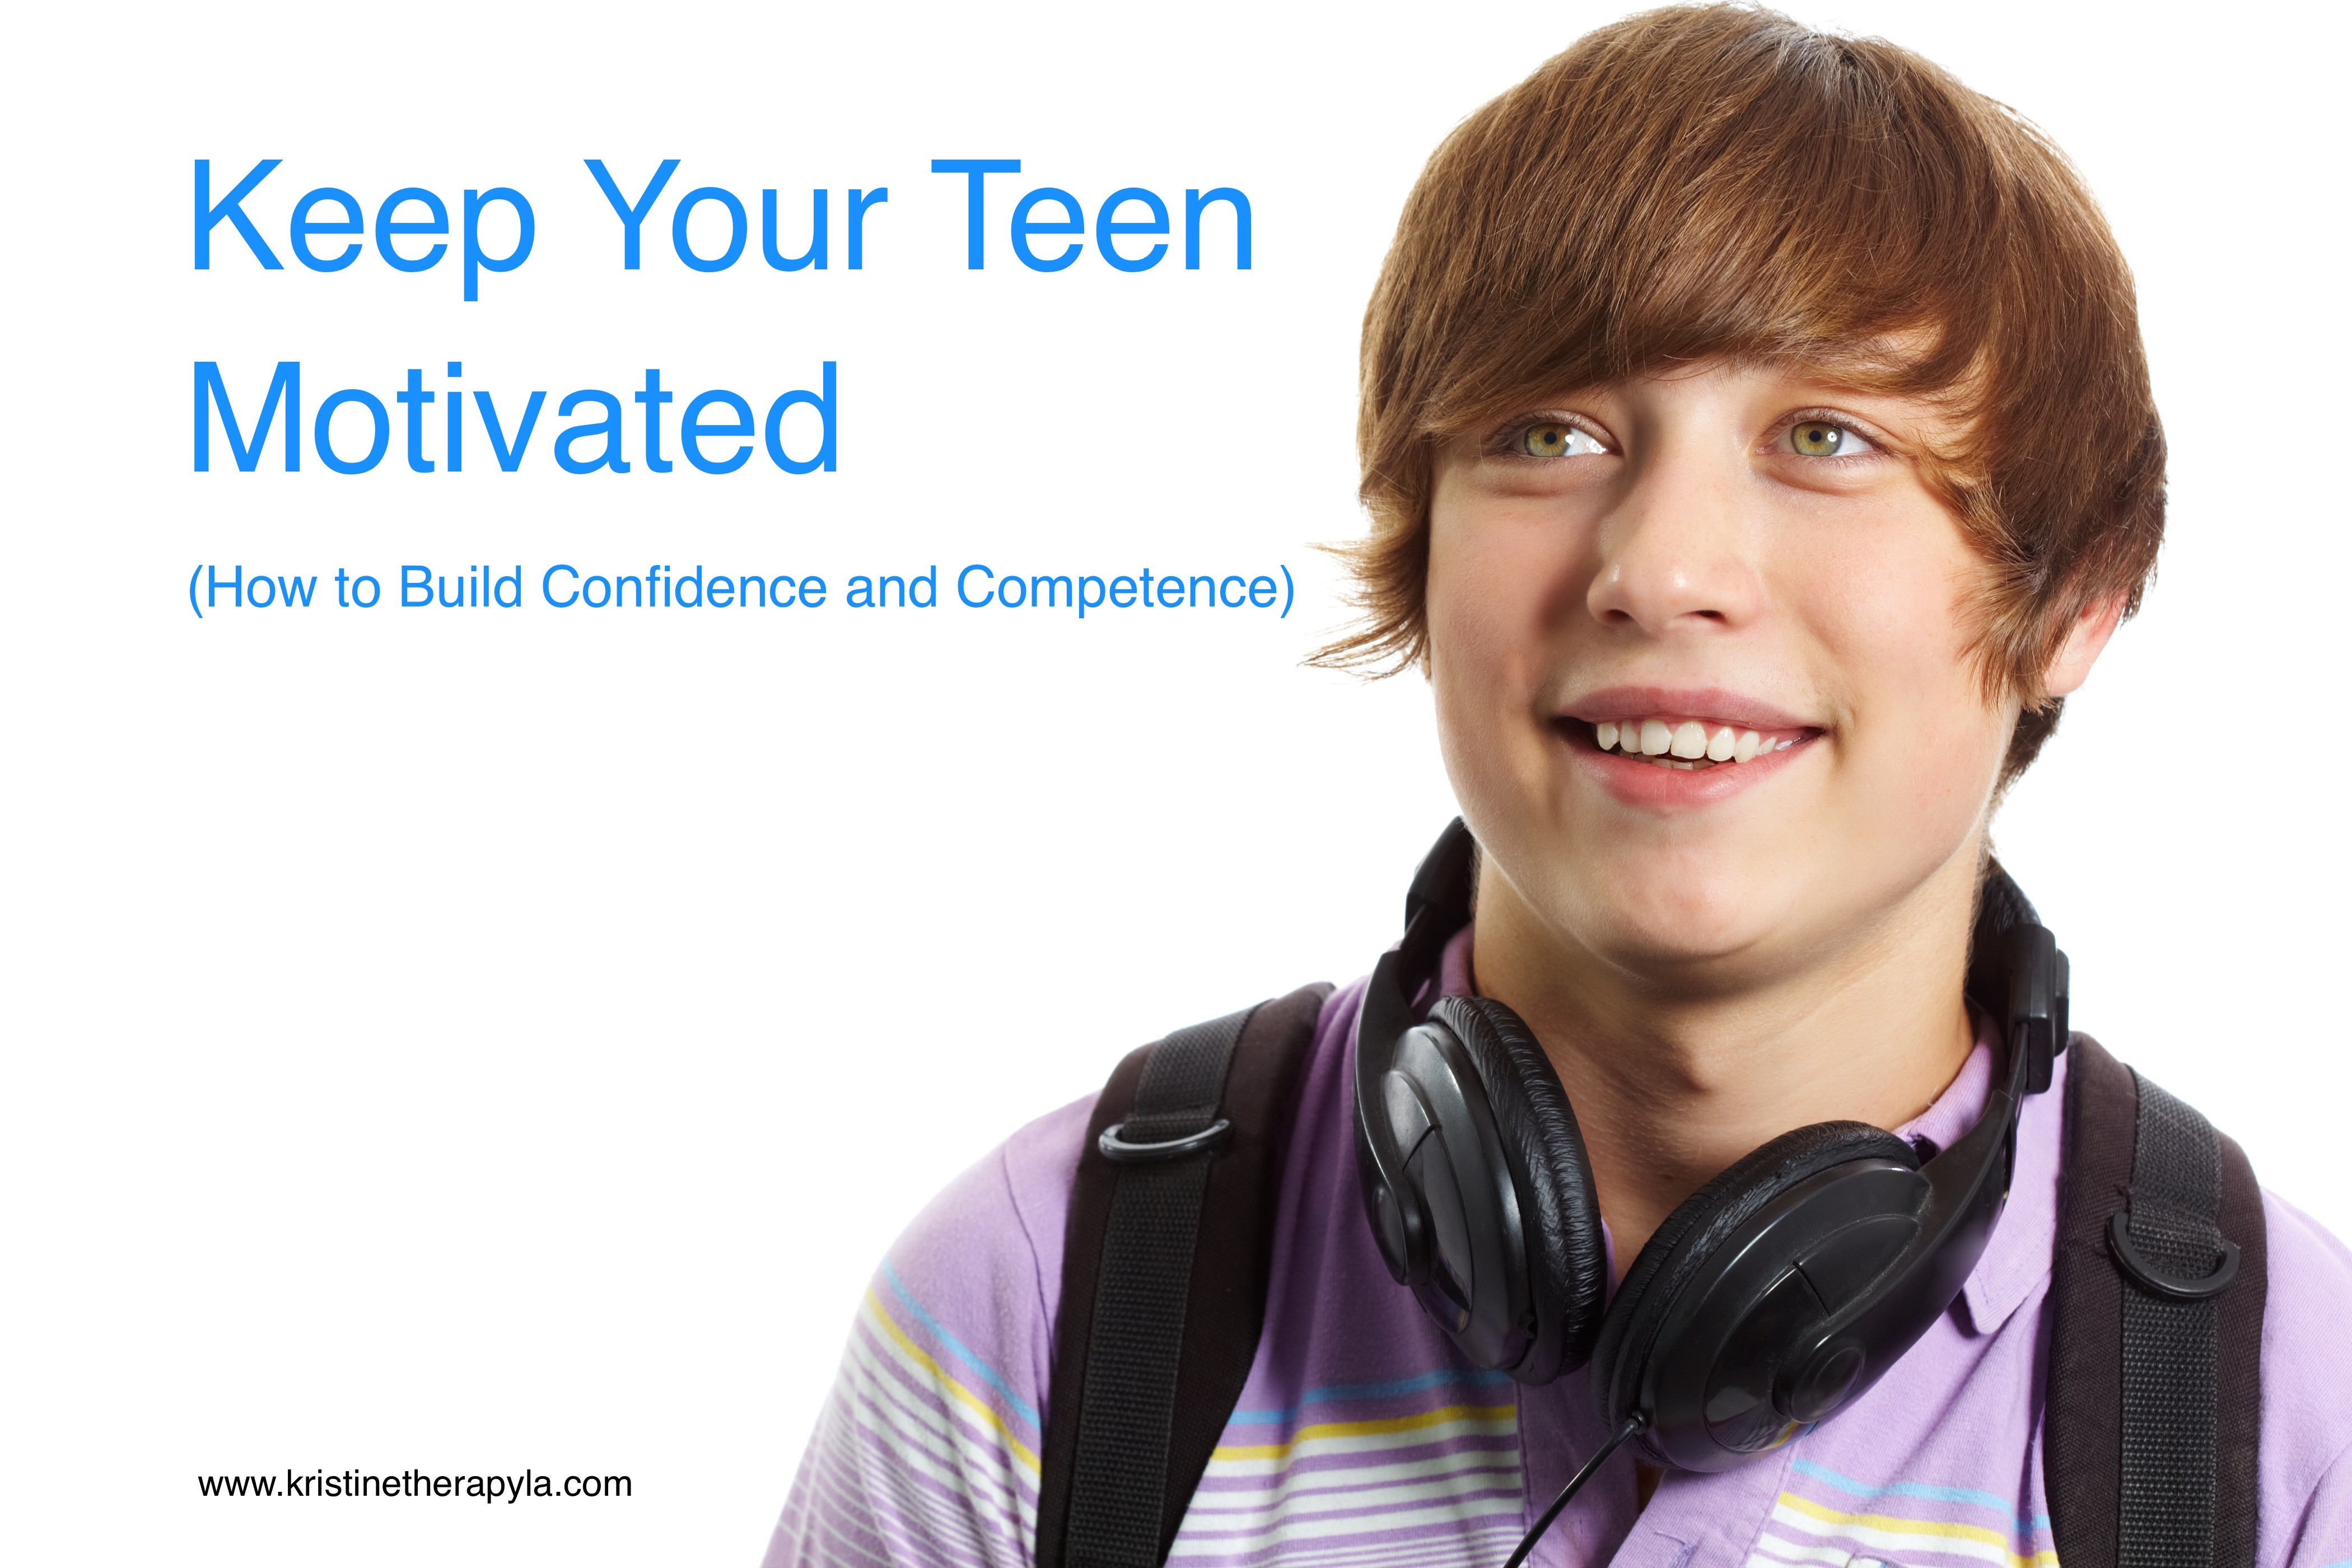 competence confidence teen motivated